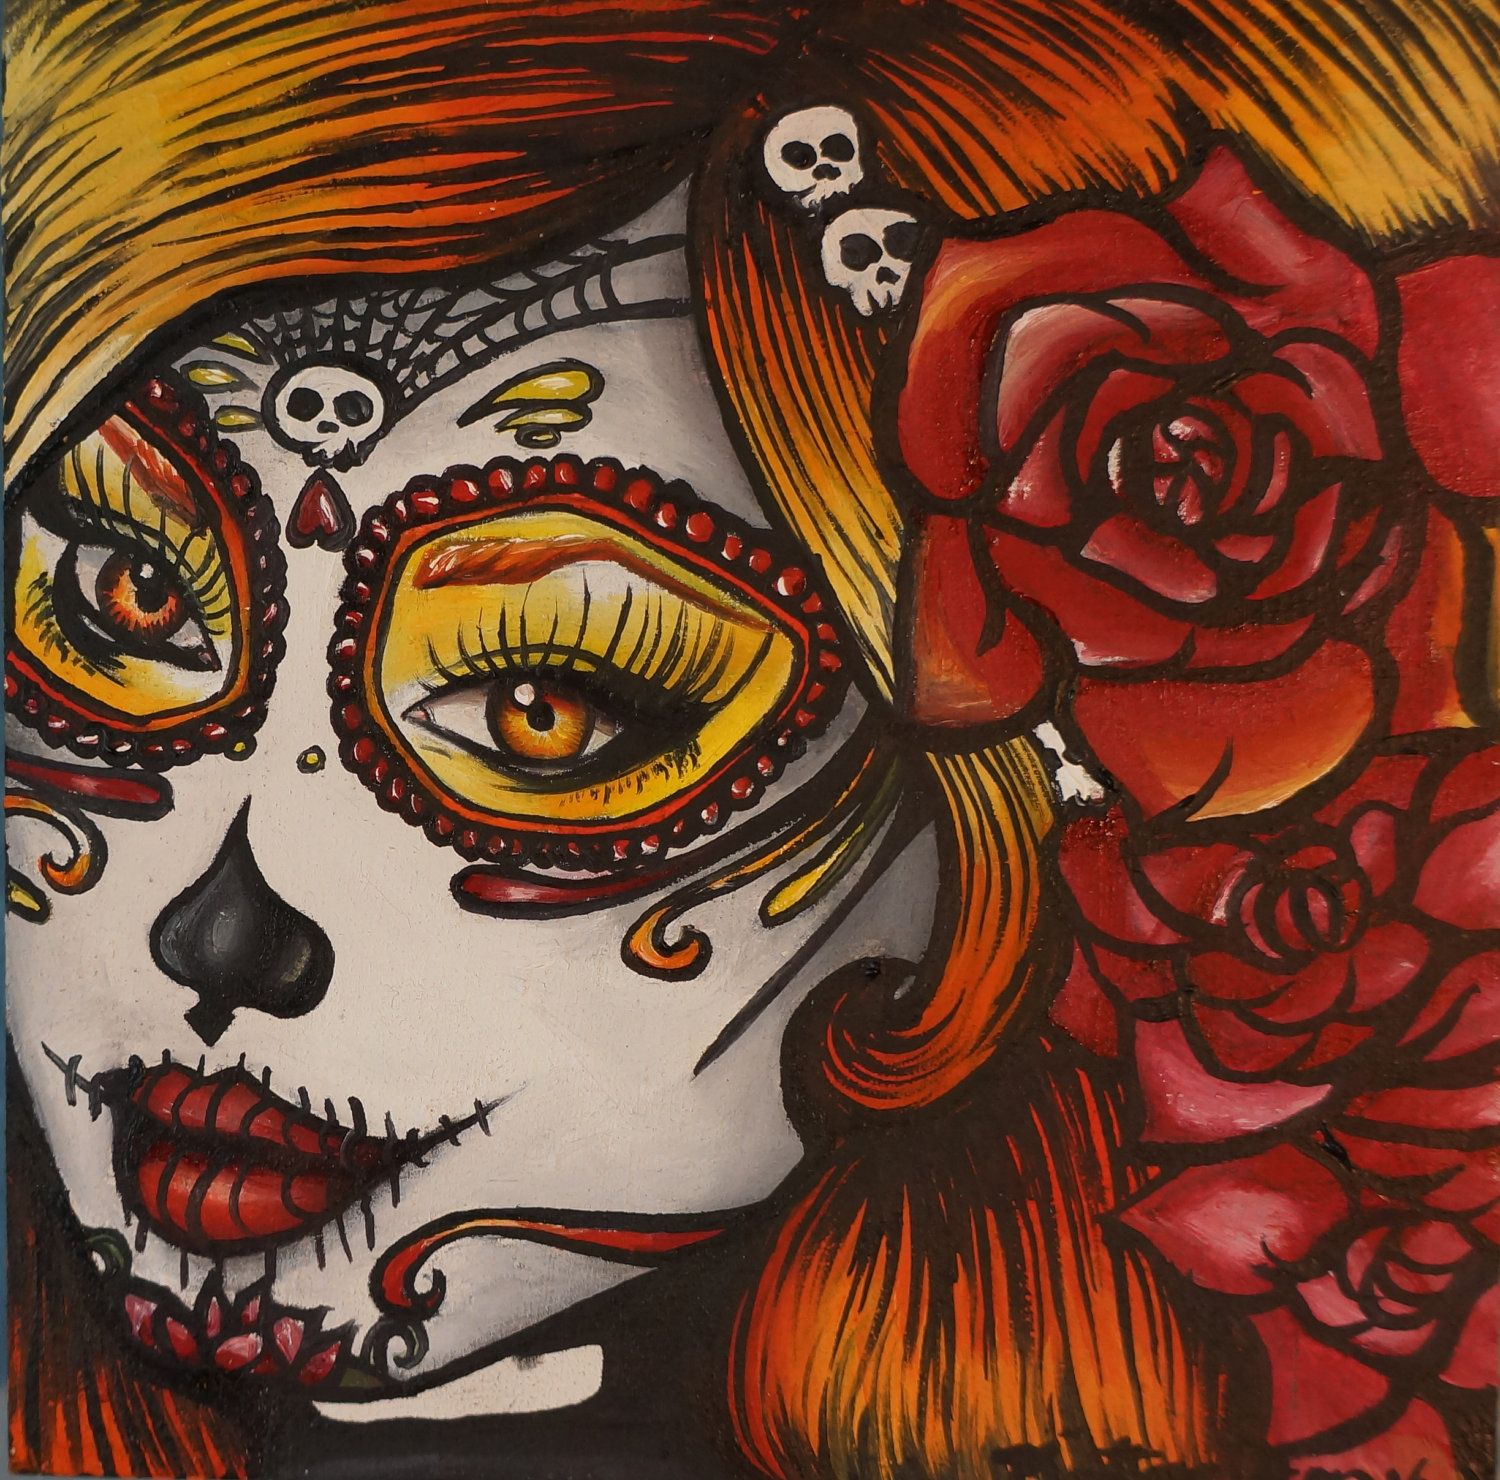 Day of the Dead  Art Rockabilly Pin Up girl Hair Dia De Los Muertos  Lowbrow Tattoo art Print 8 by 8.